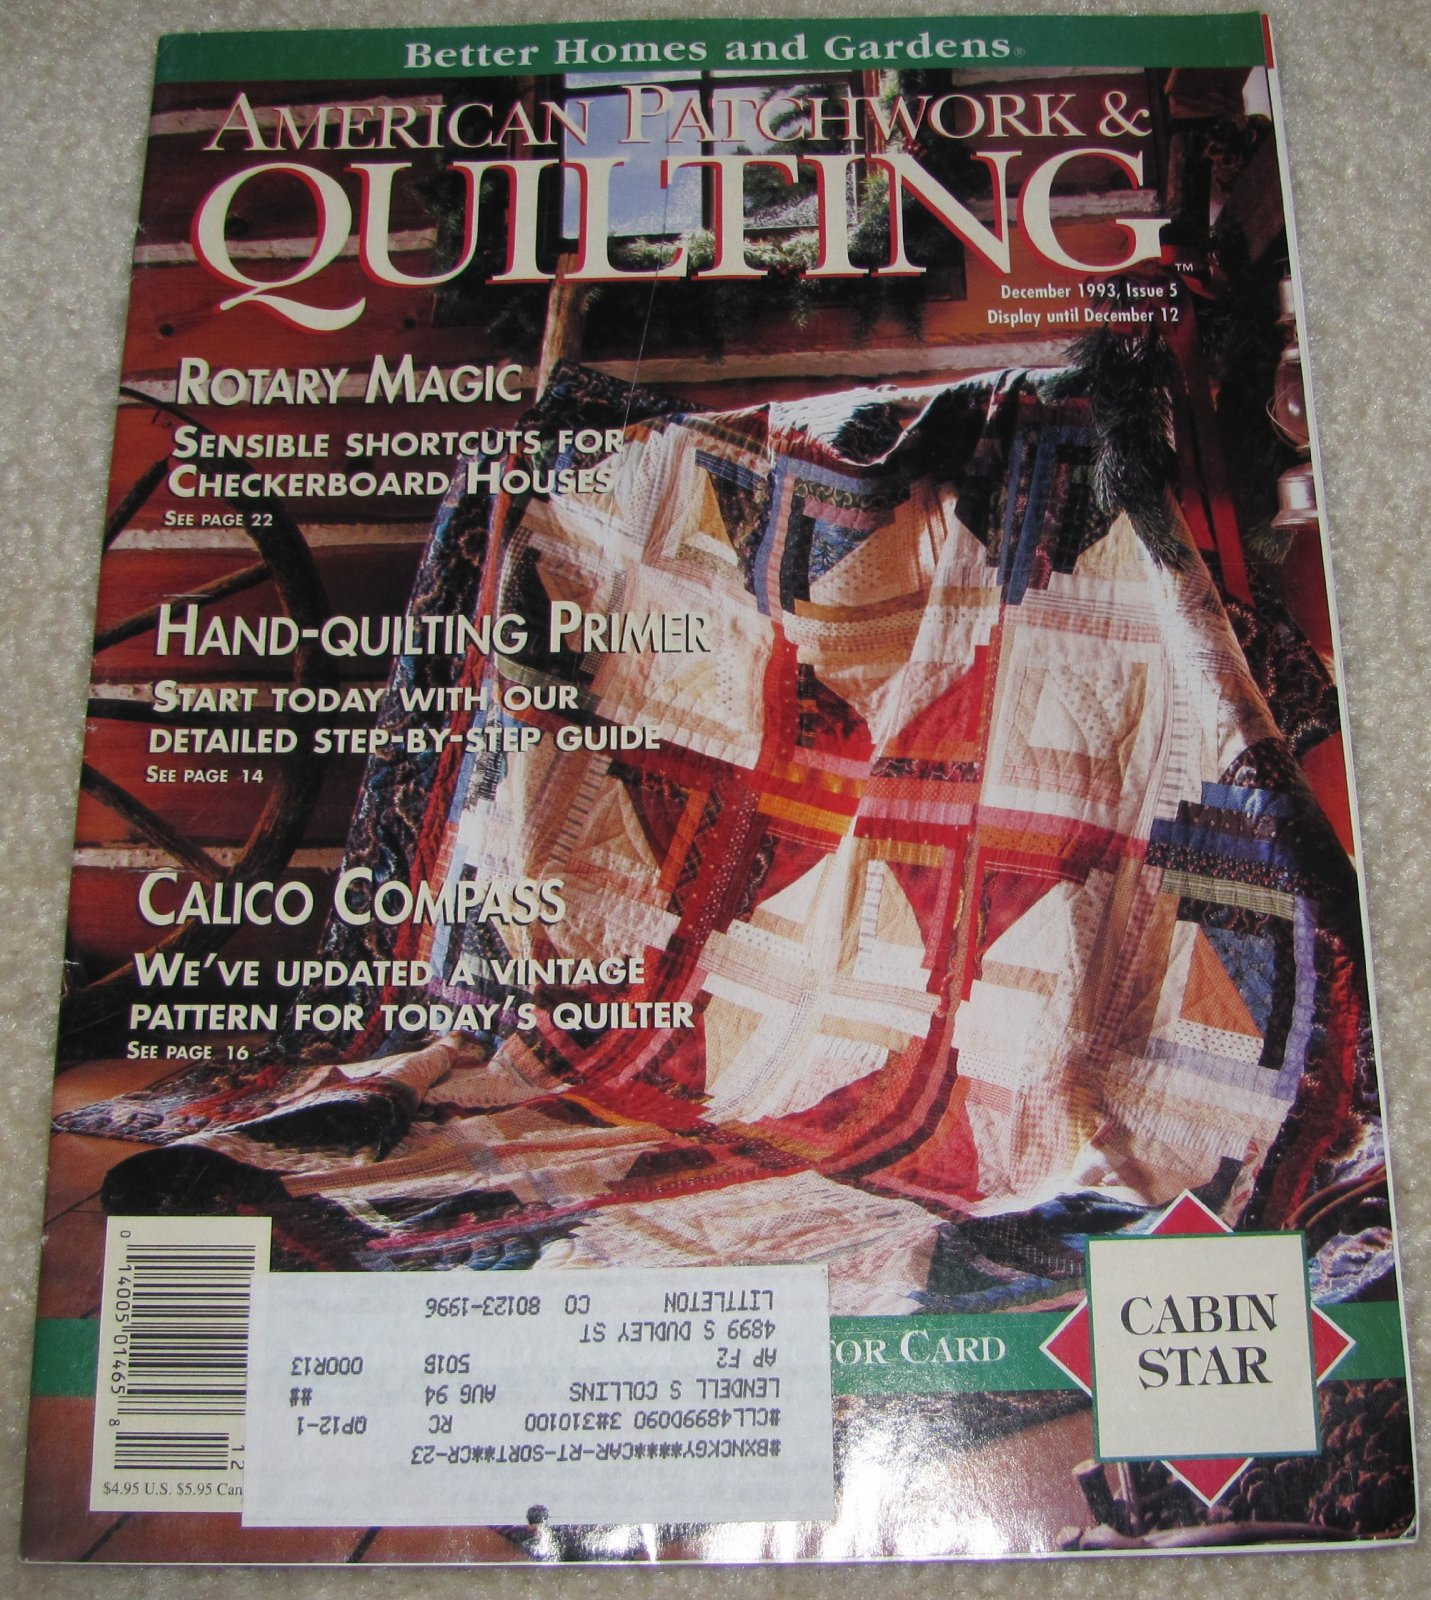 American Patchwork & Quilting December 1993 Issue 5